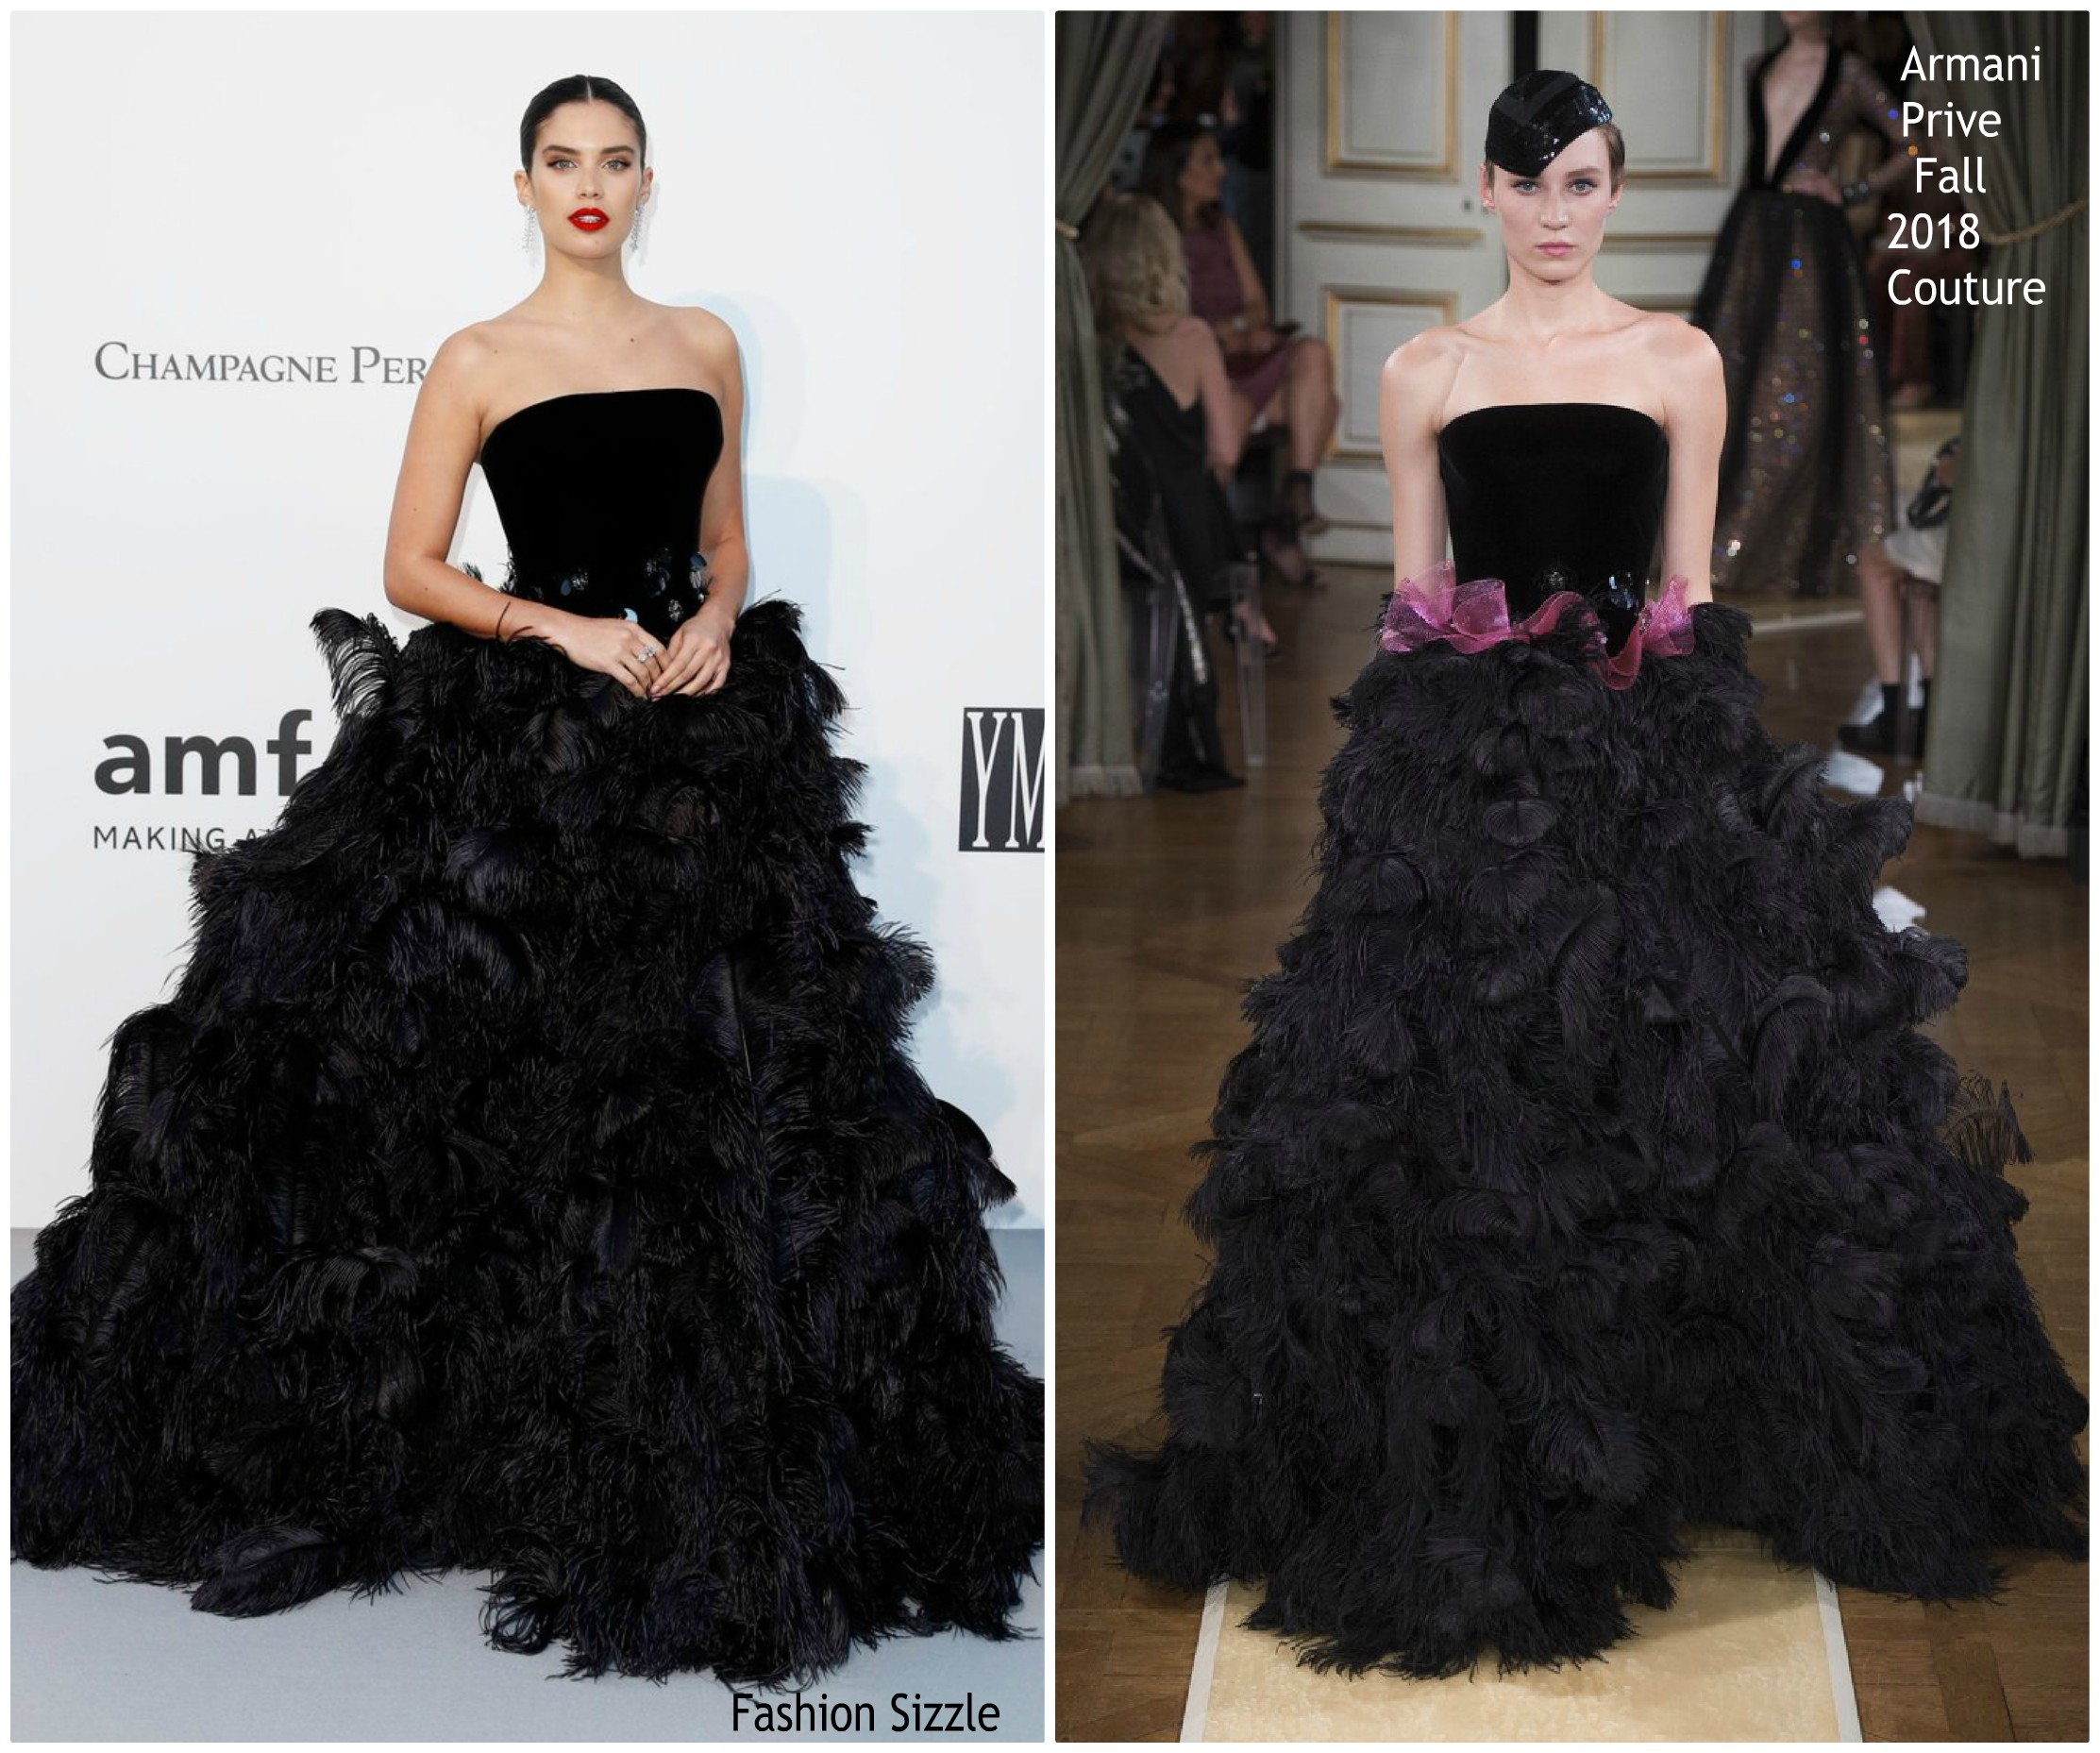 sara-sampaio-in-armani-prive-couture-2019-amfar-cannes-gala